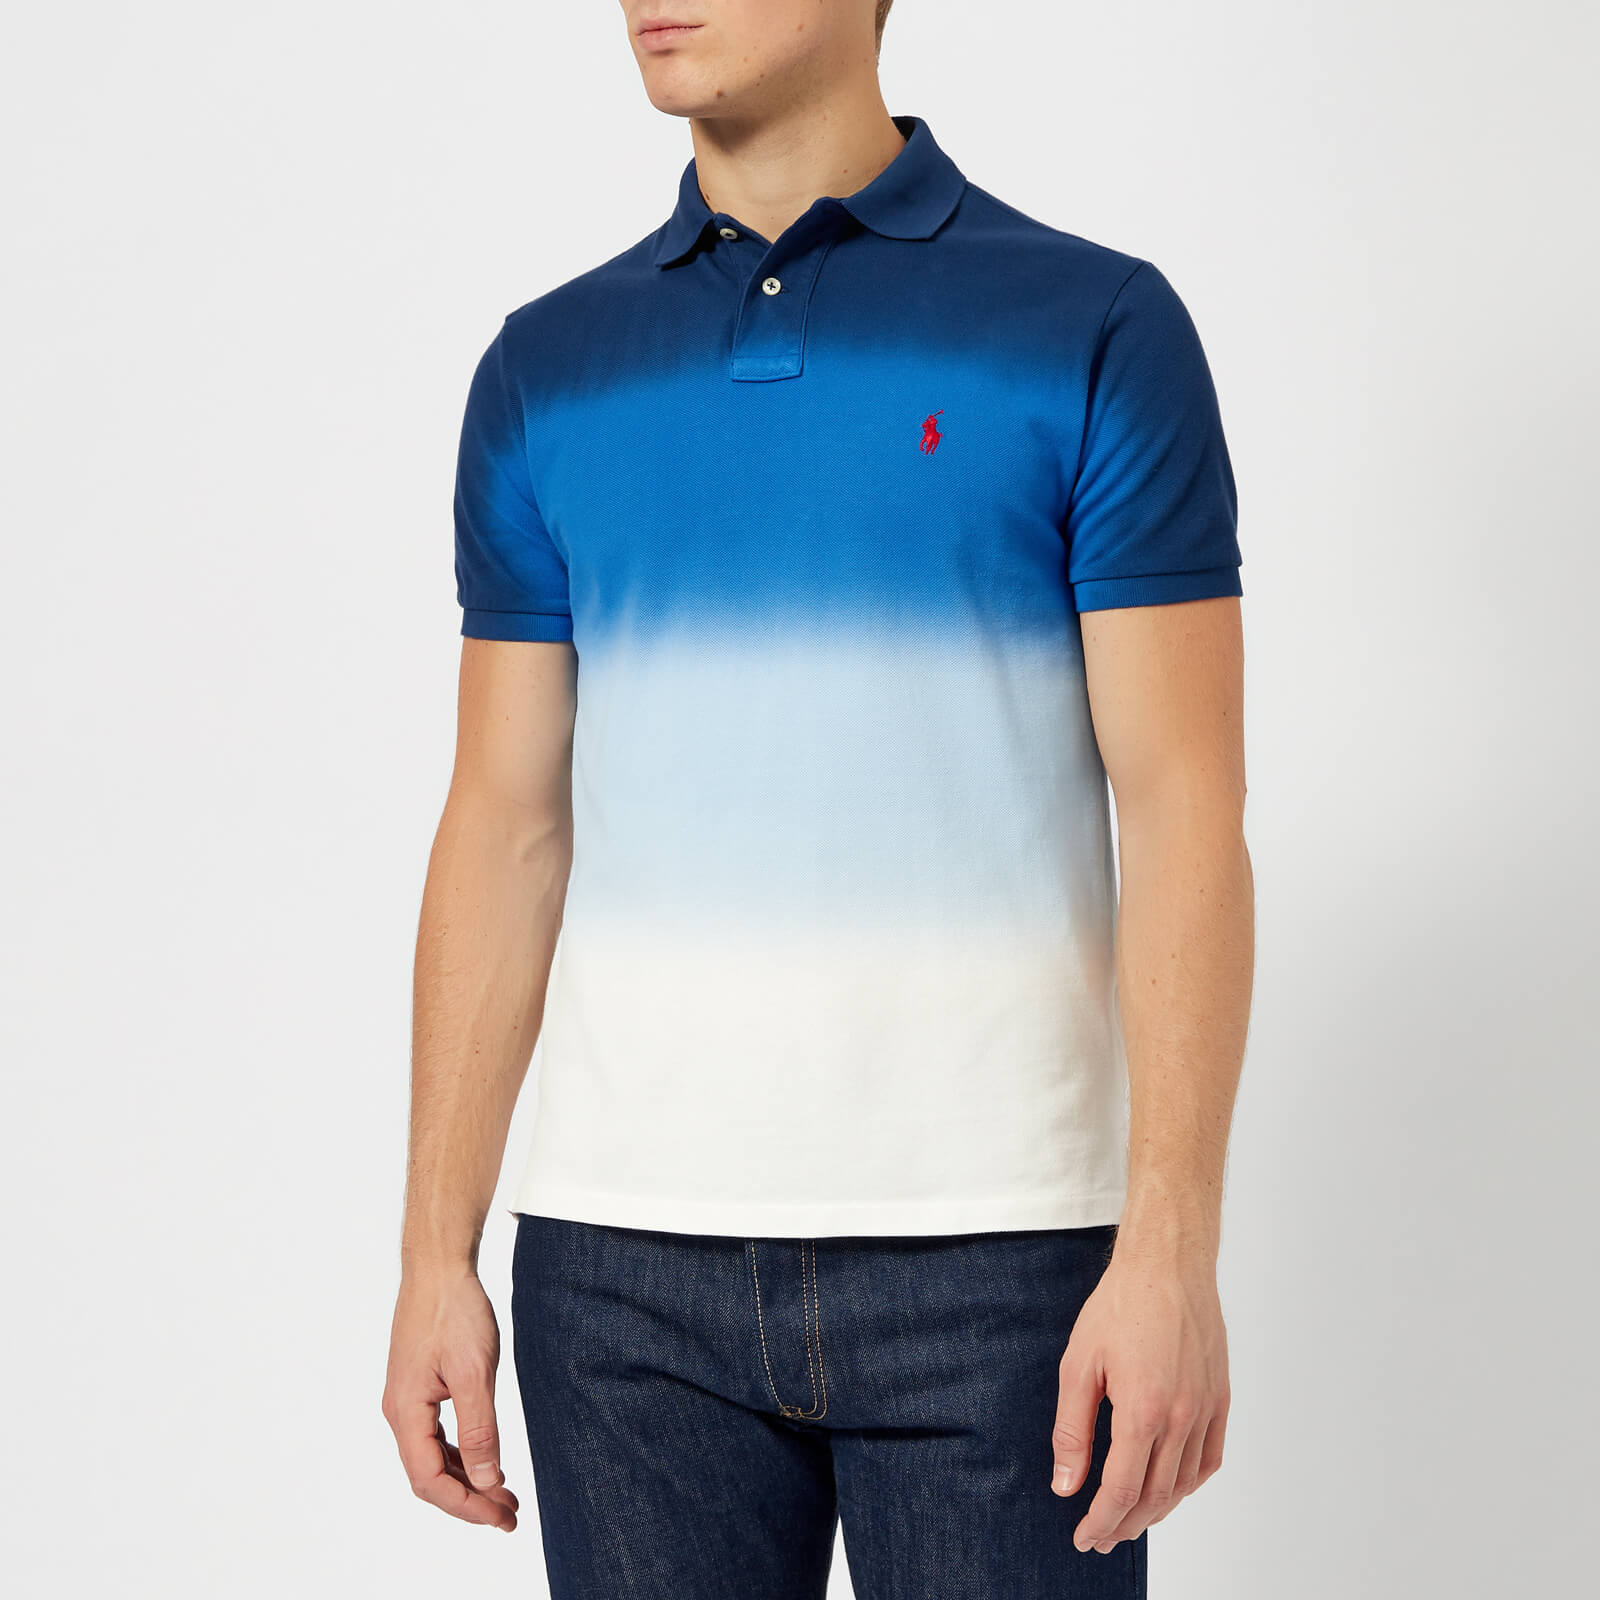 081d476ae Polo Ralph Lauren Men s Dip Dye Polo Shirt - Navy White - Free UK Delivery  over £50